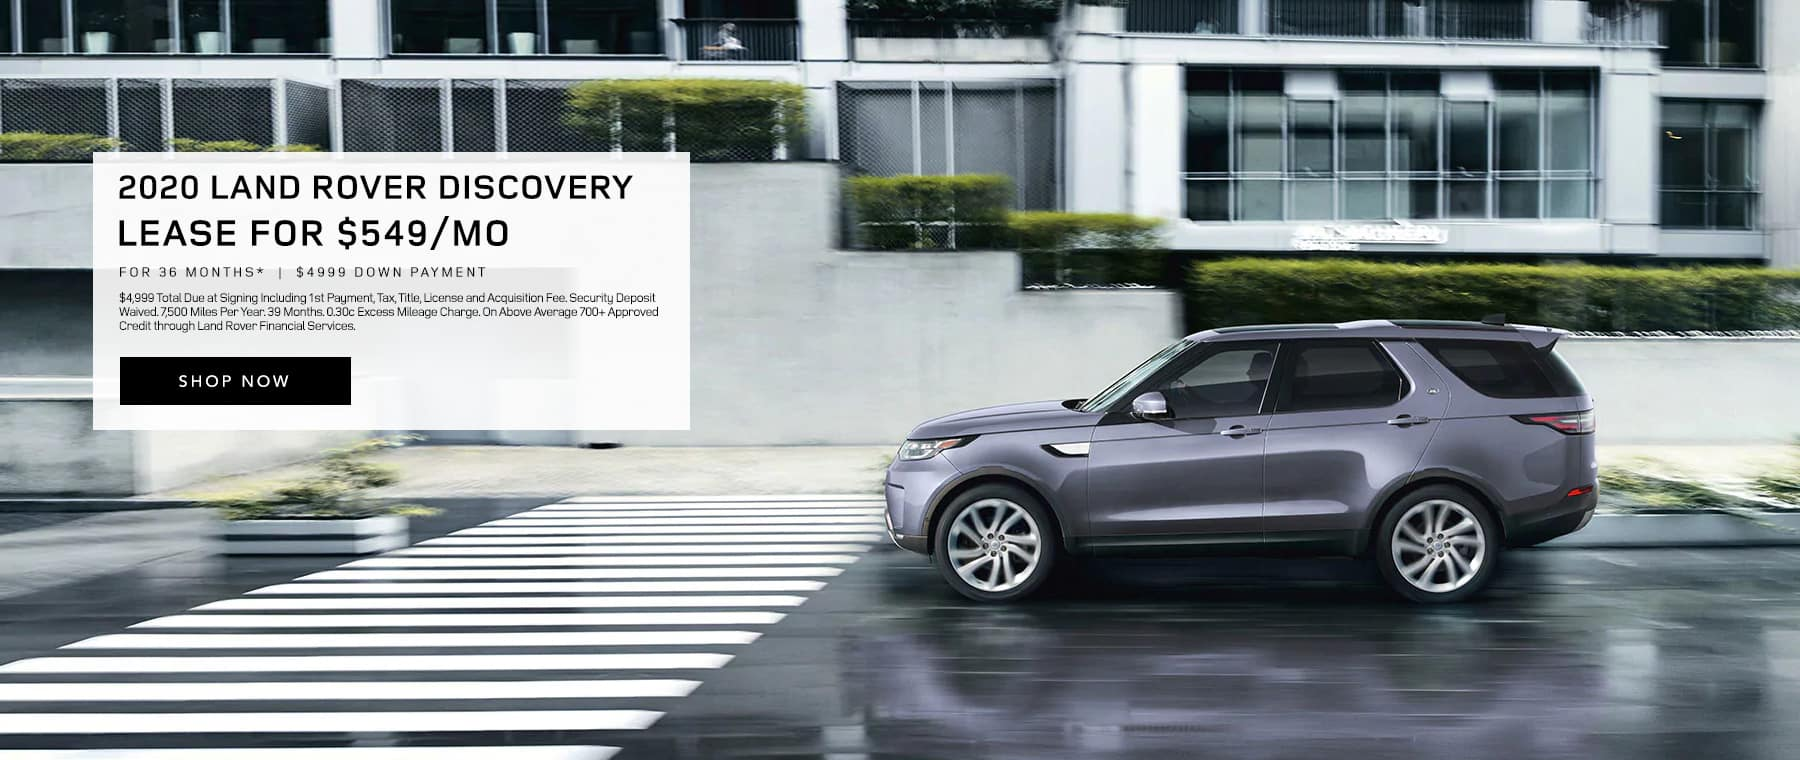 Discovery Lease